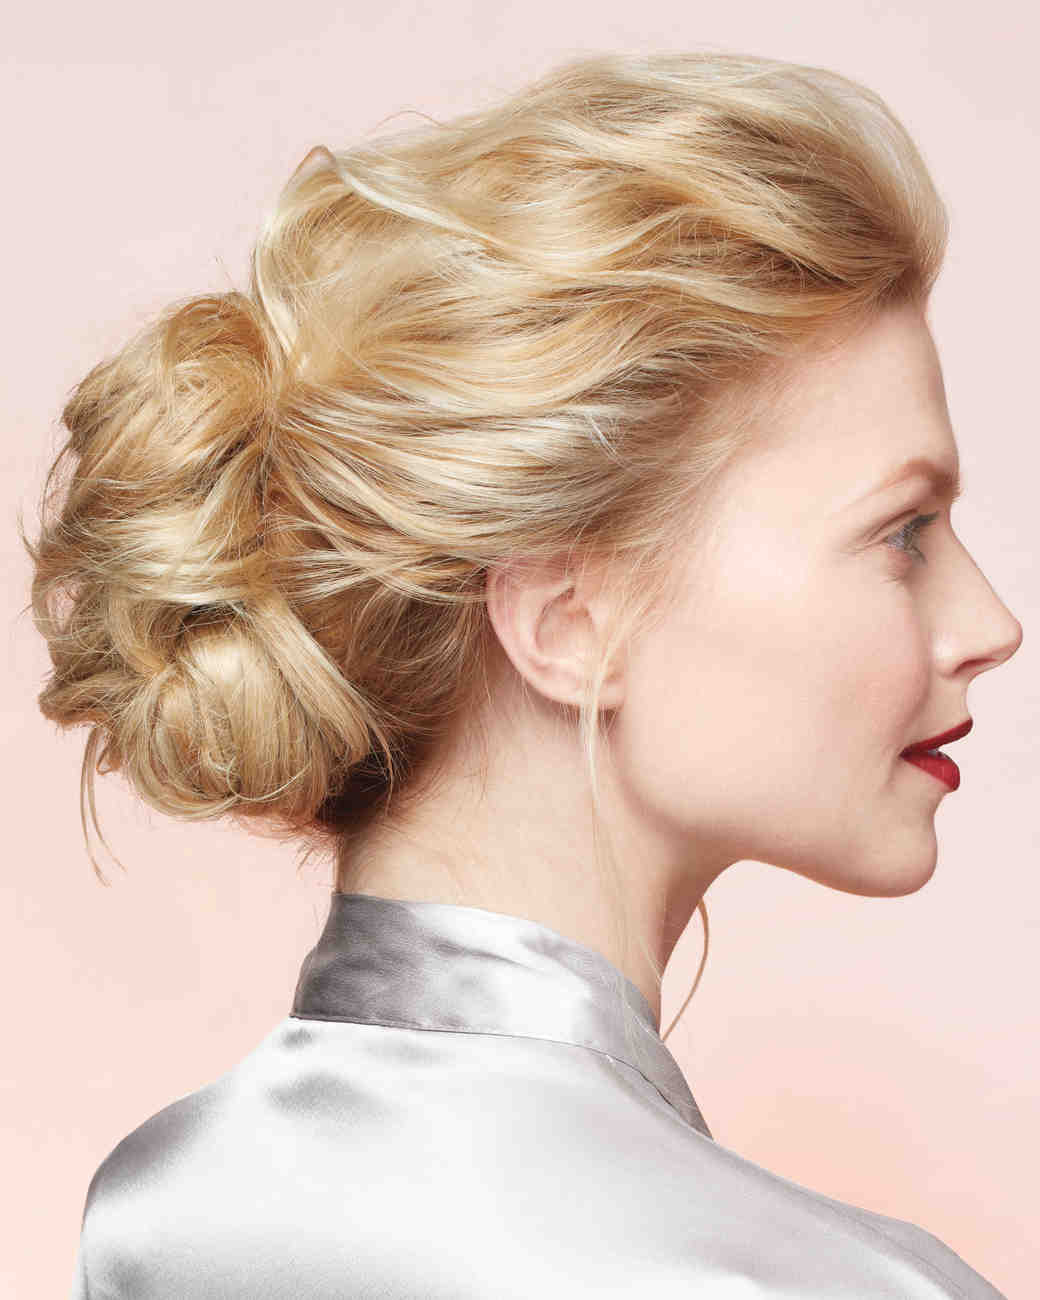 Best ideas about DIY Wedding Updos . Save or Pin DIY Wedding Hairstyles Now.